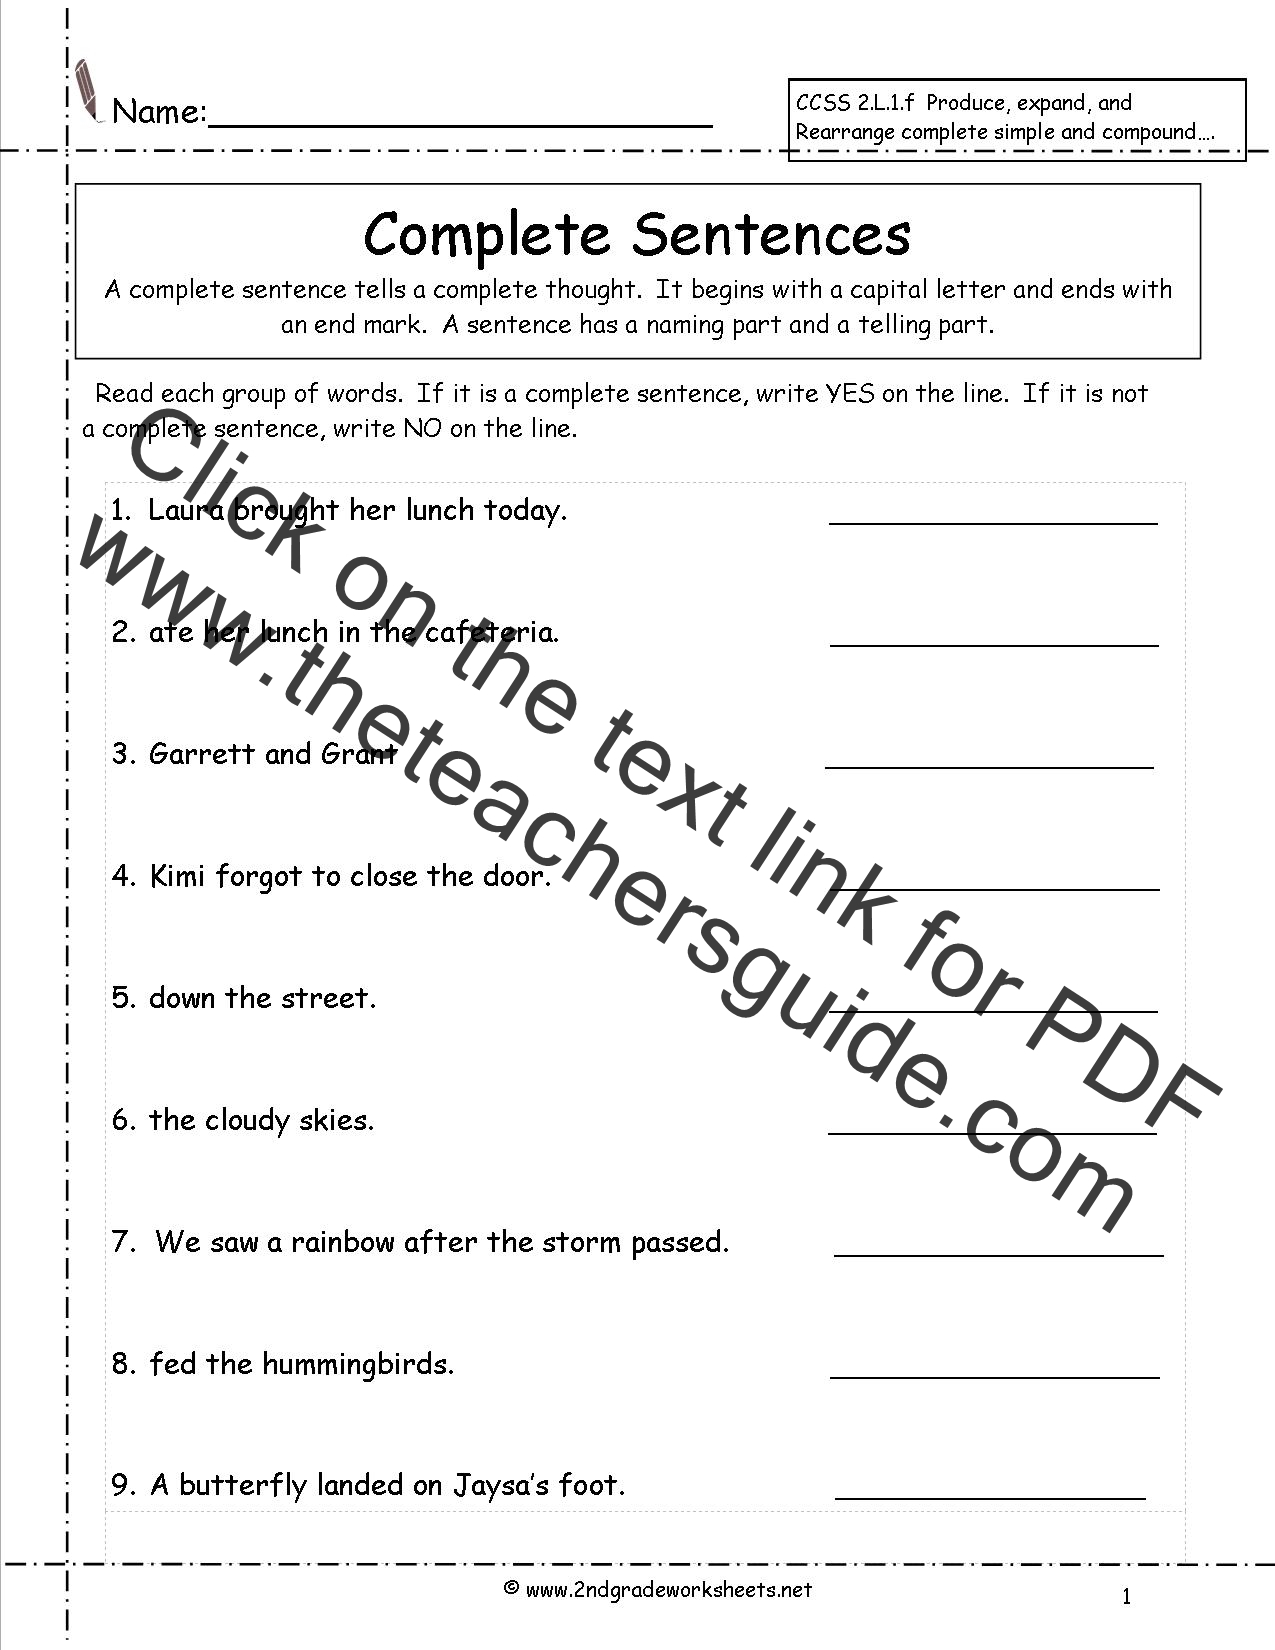 Worksheets Correct Sentences Worksheet second grade sentences worksheets ccss 2 l 1 f sentence worksheet complete sentences